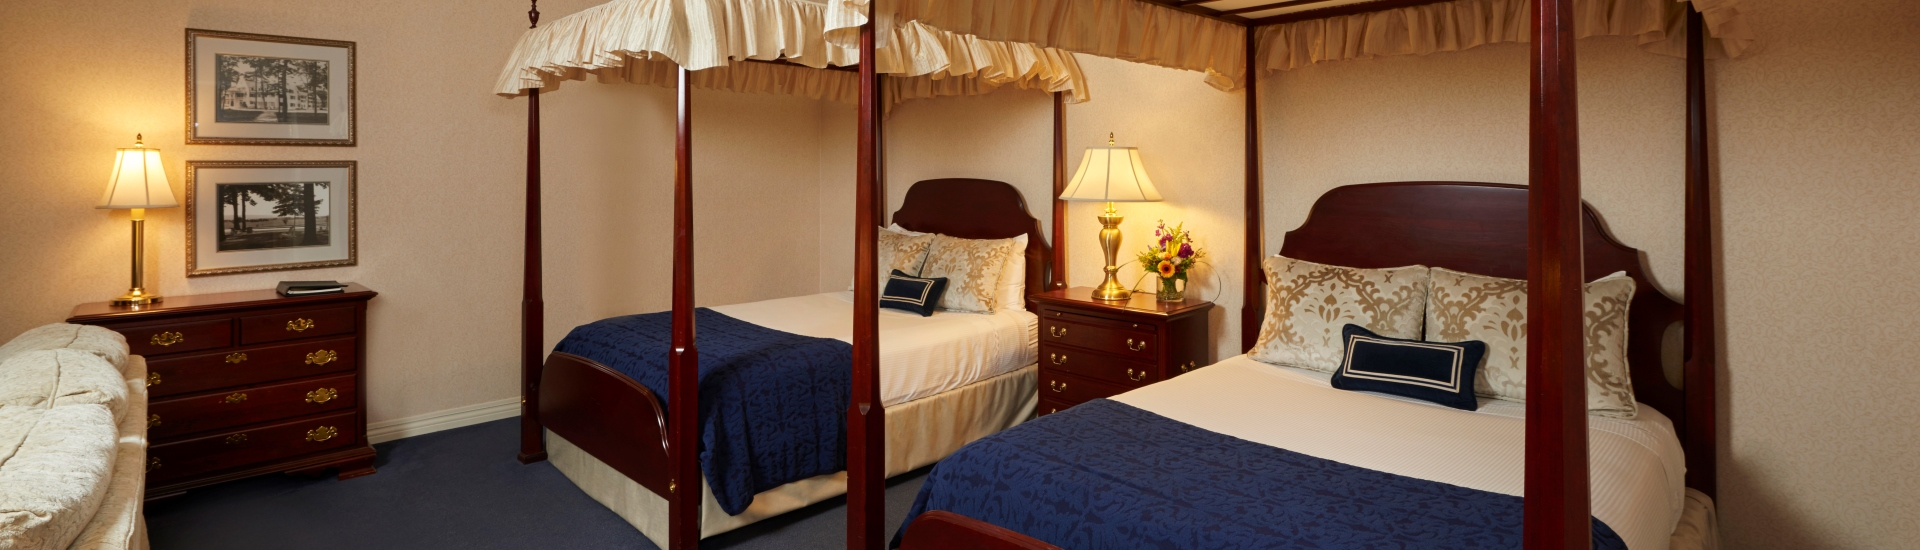 Canopy Double room at The Nittany Lion Inn